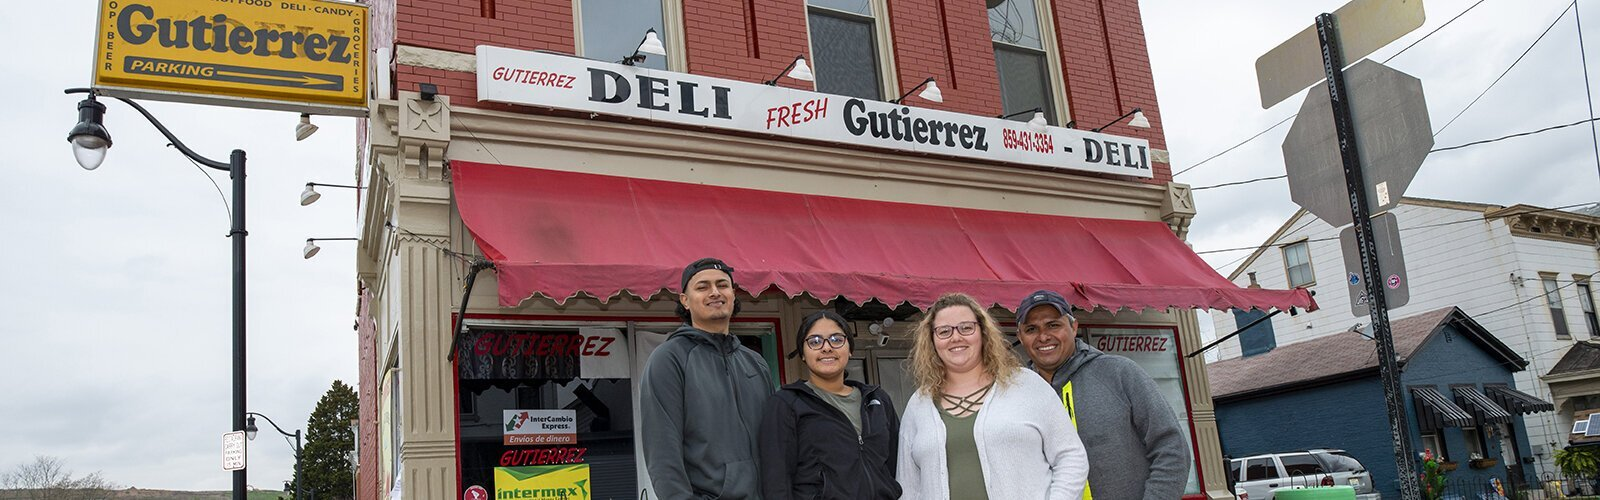 Gutierrez Deli has become a gathering place and resource for Covington's Latino residents. The Gutierrez family: Sergio, Evelyn, Courtney Case, and Claudio.